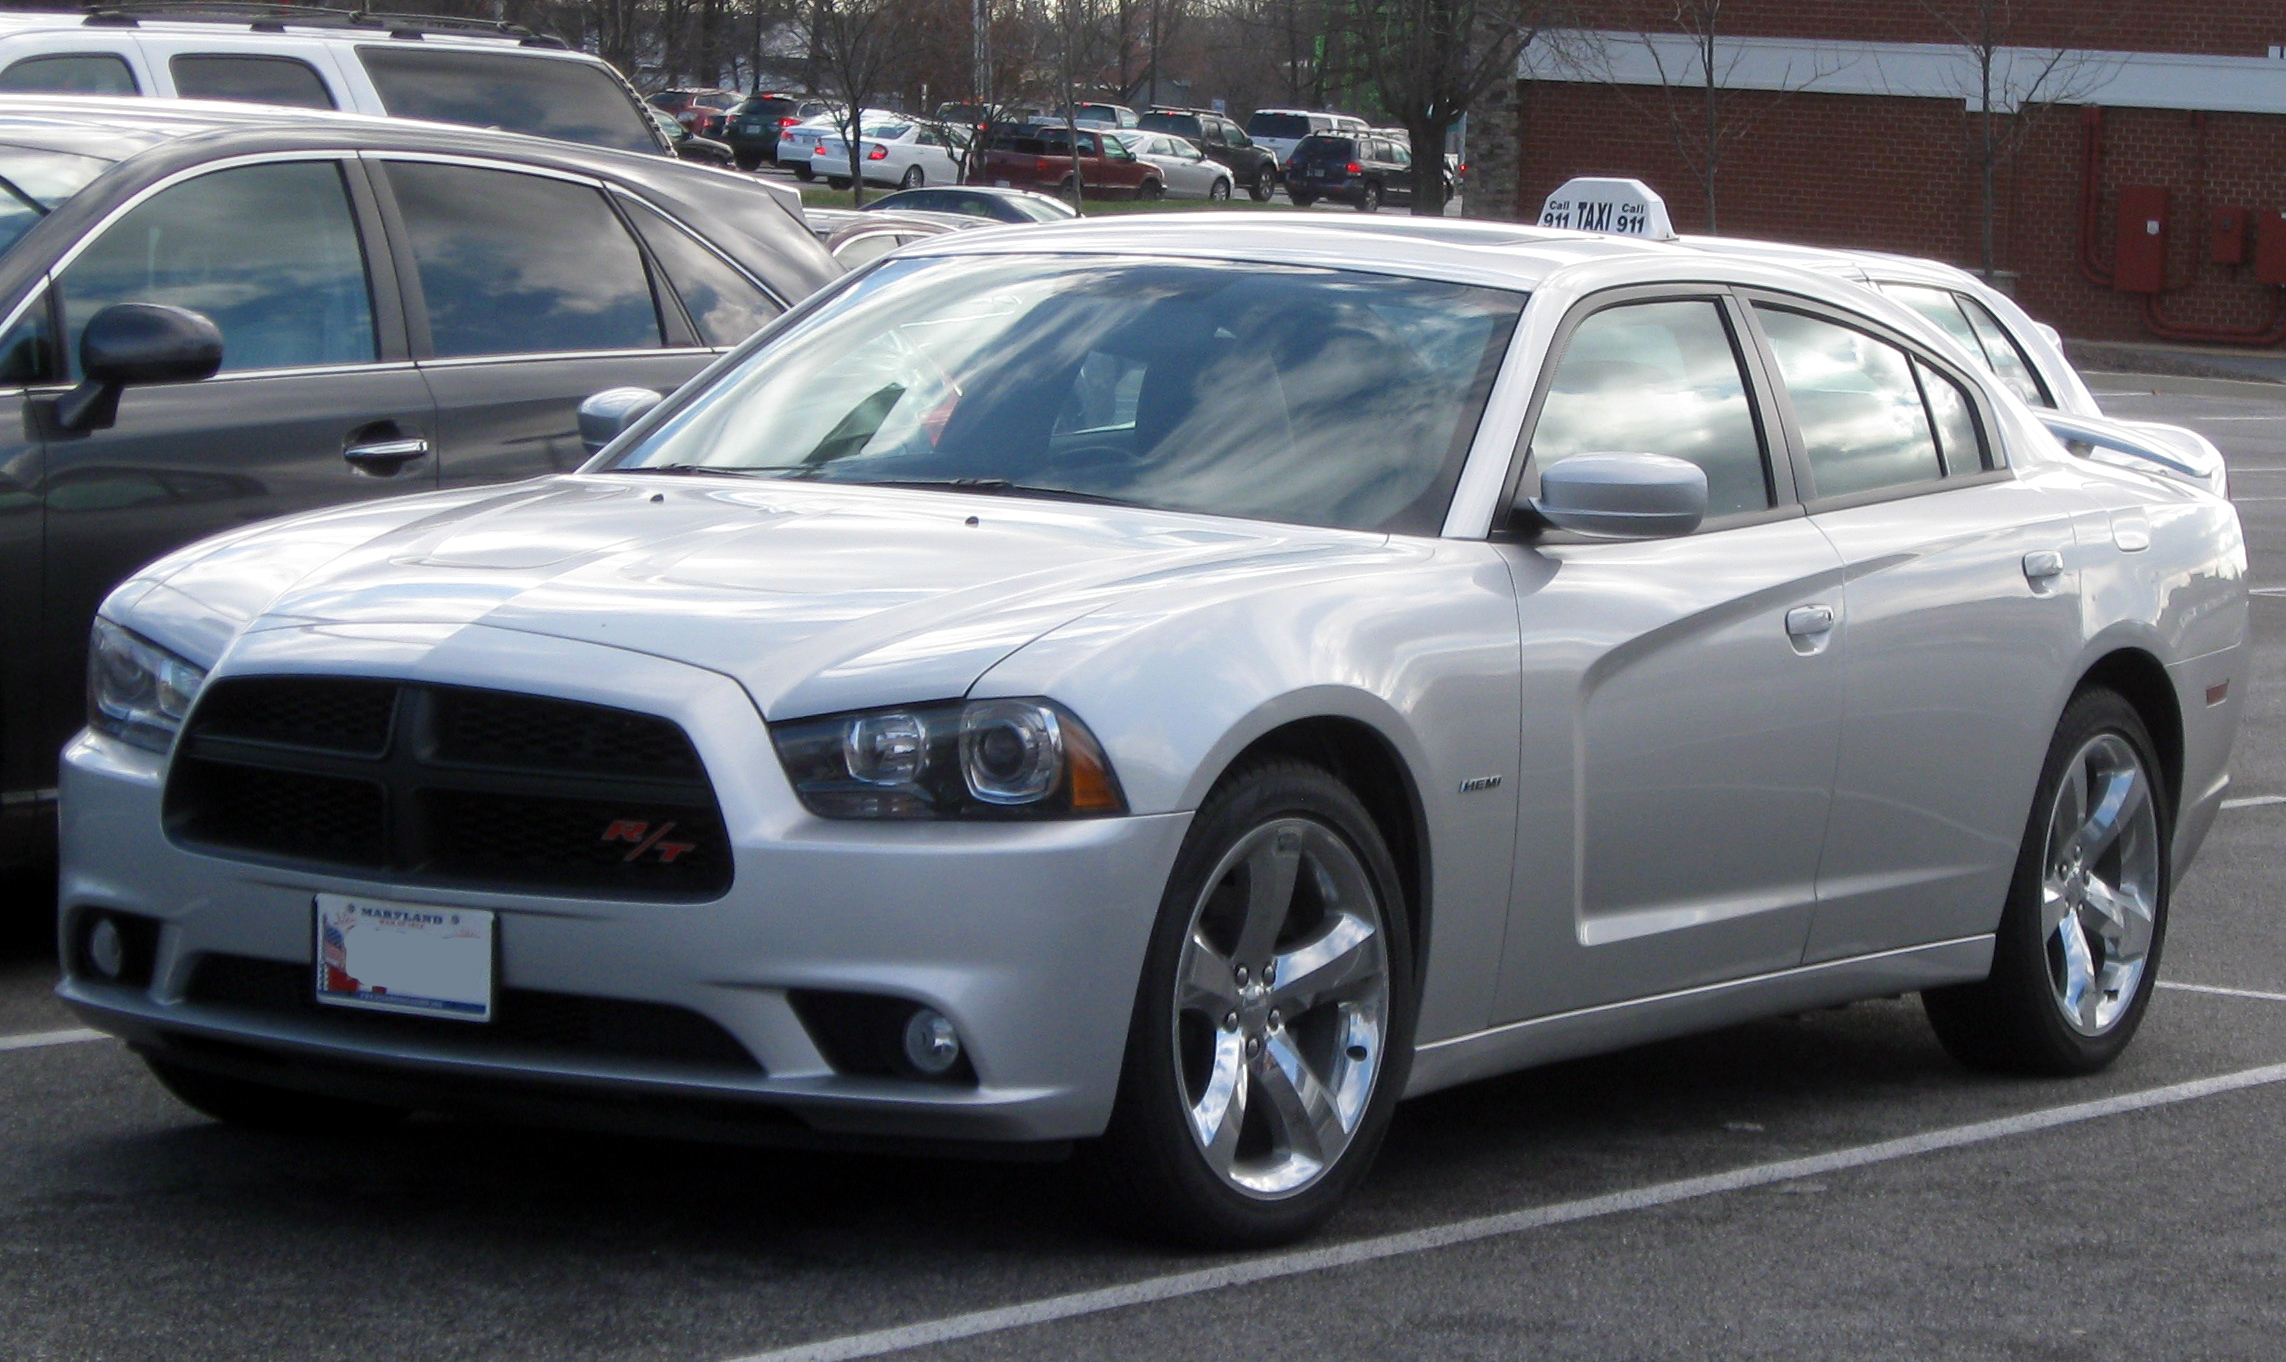 File Dodge Charger 12 23 2011 Jpg Wikimedia Commons